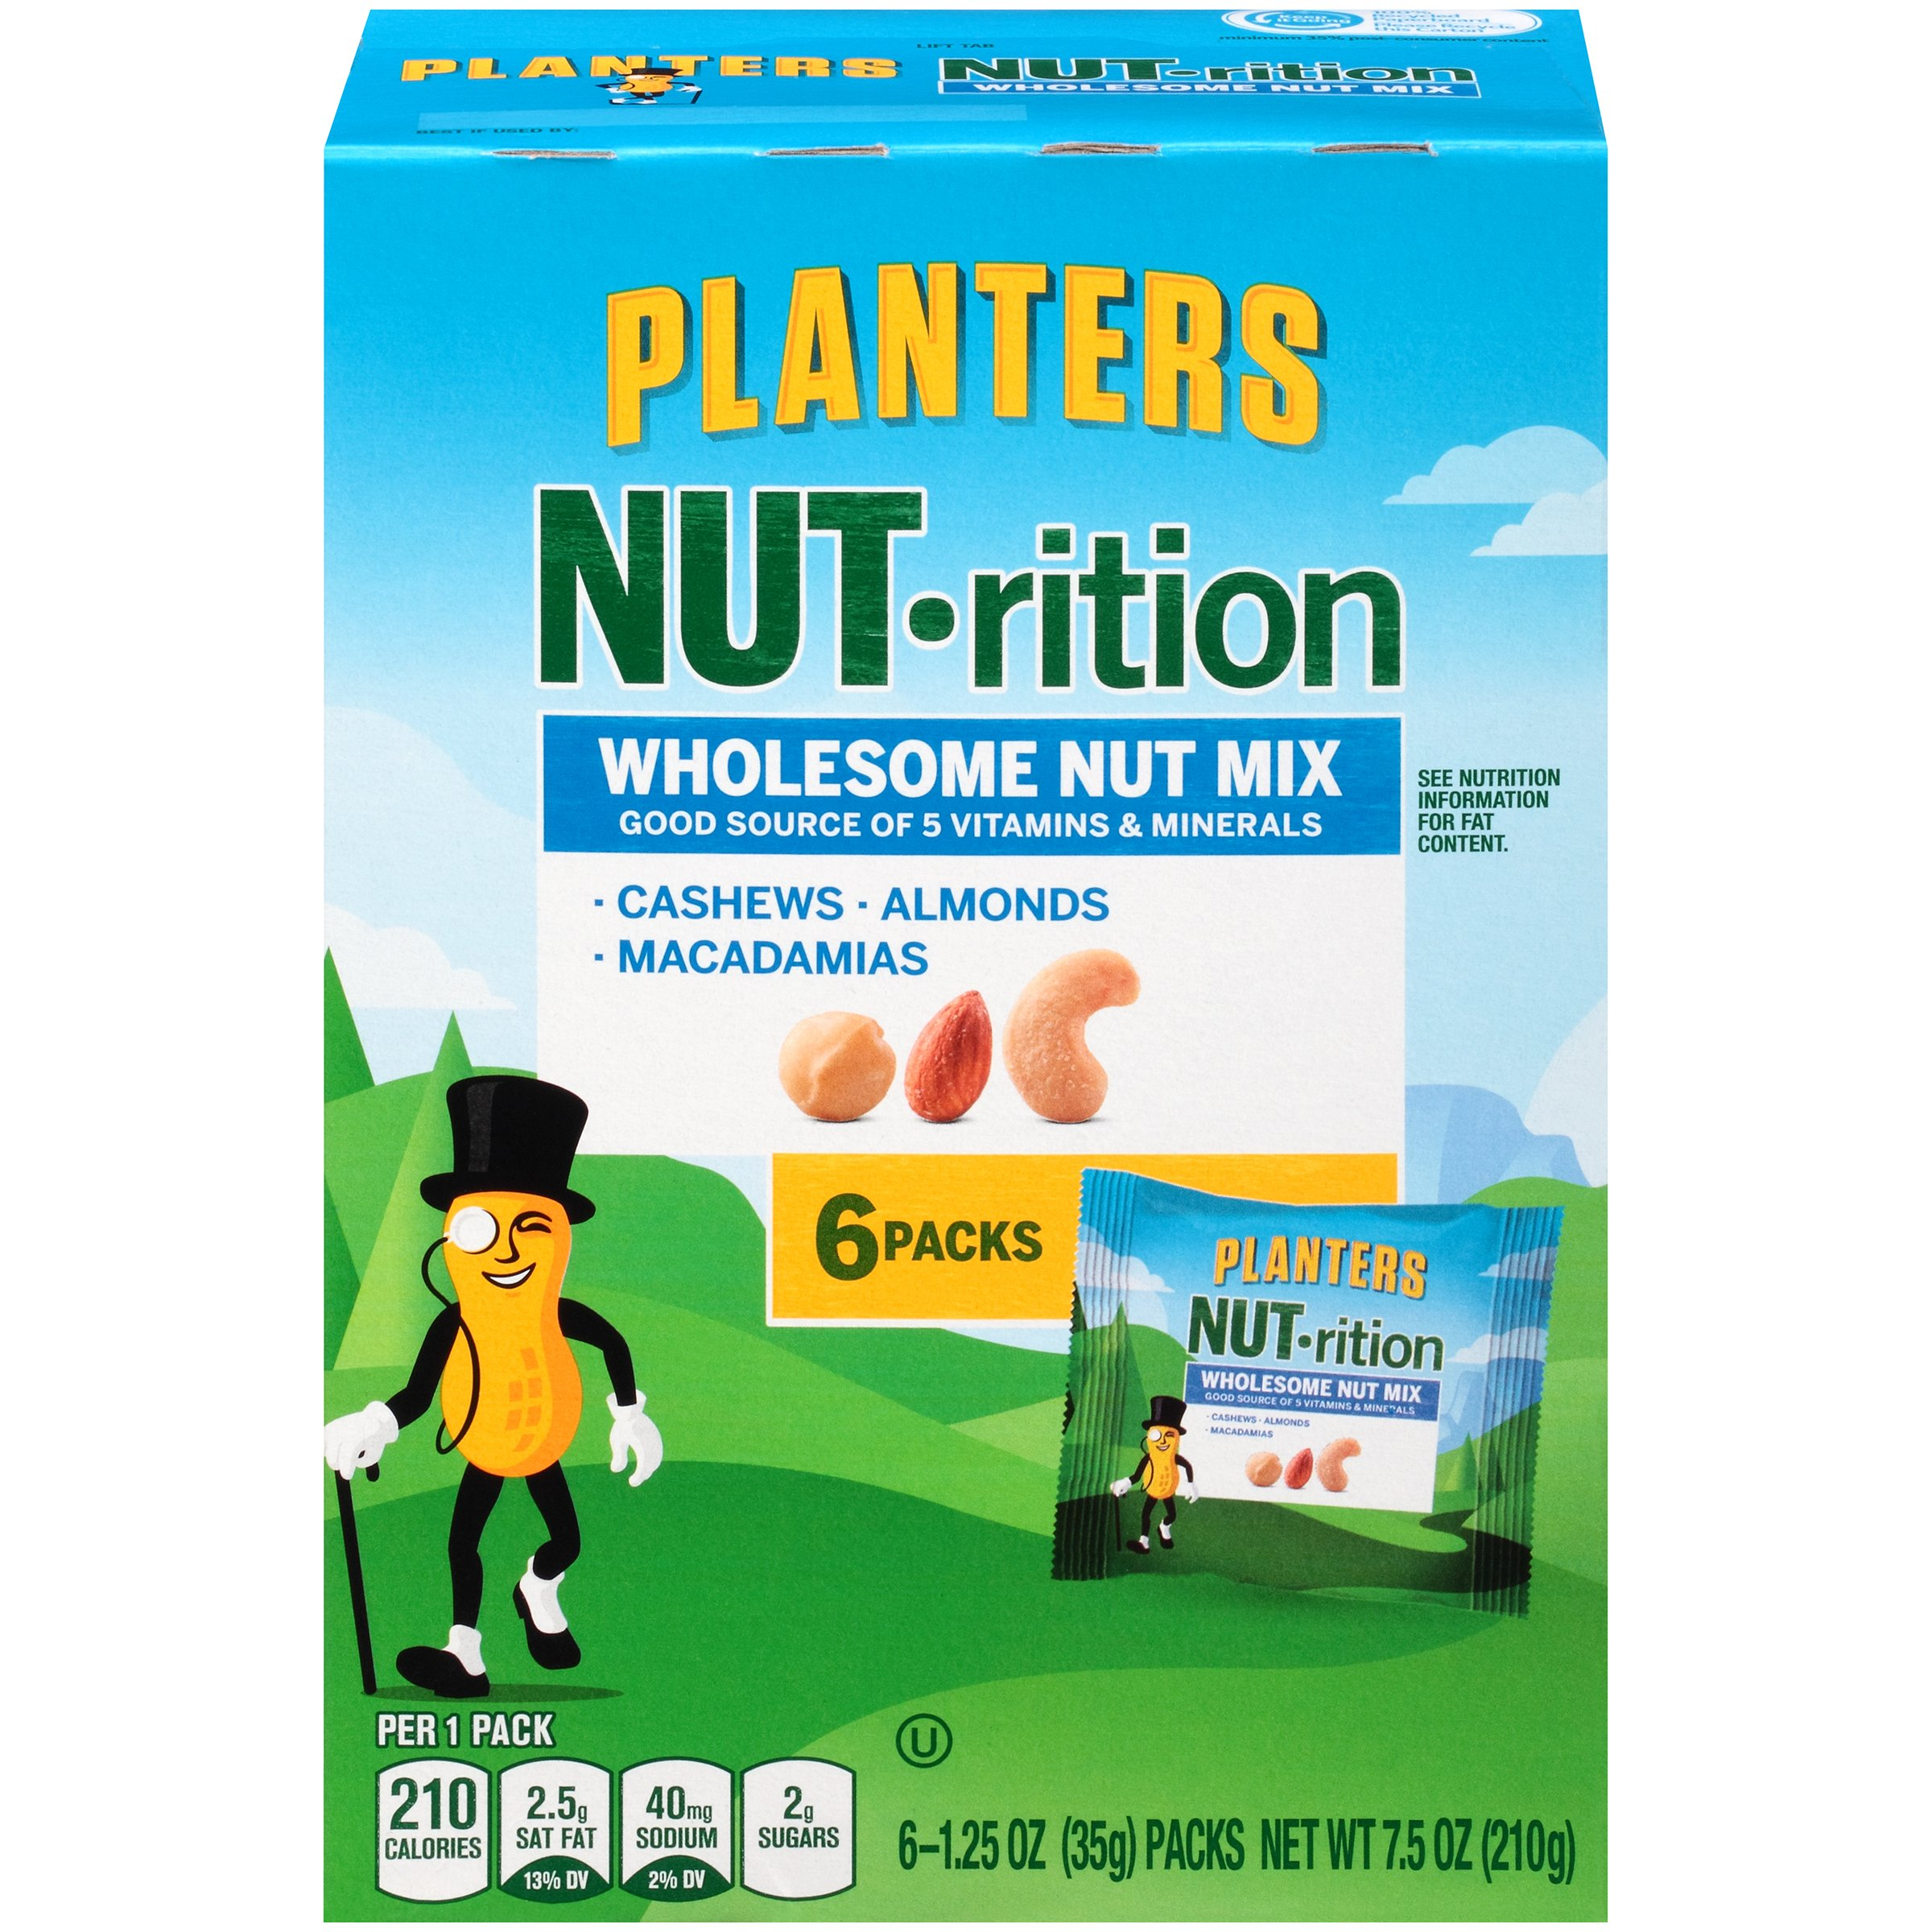 Planters Nutrition Wholesome Nut Mix Pack, 6 Pouches, 7.5 Ounce